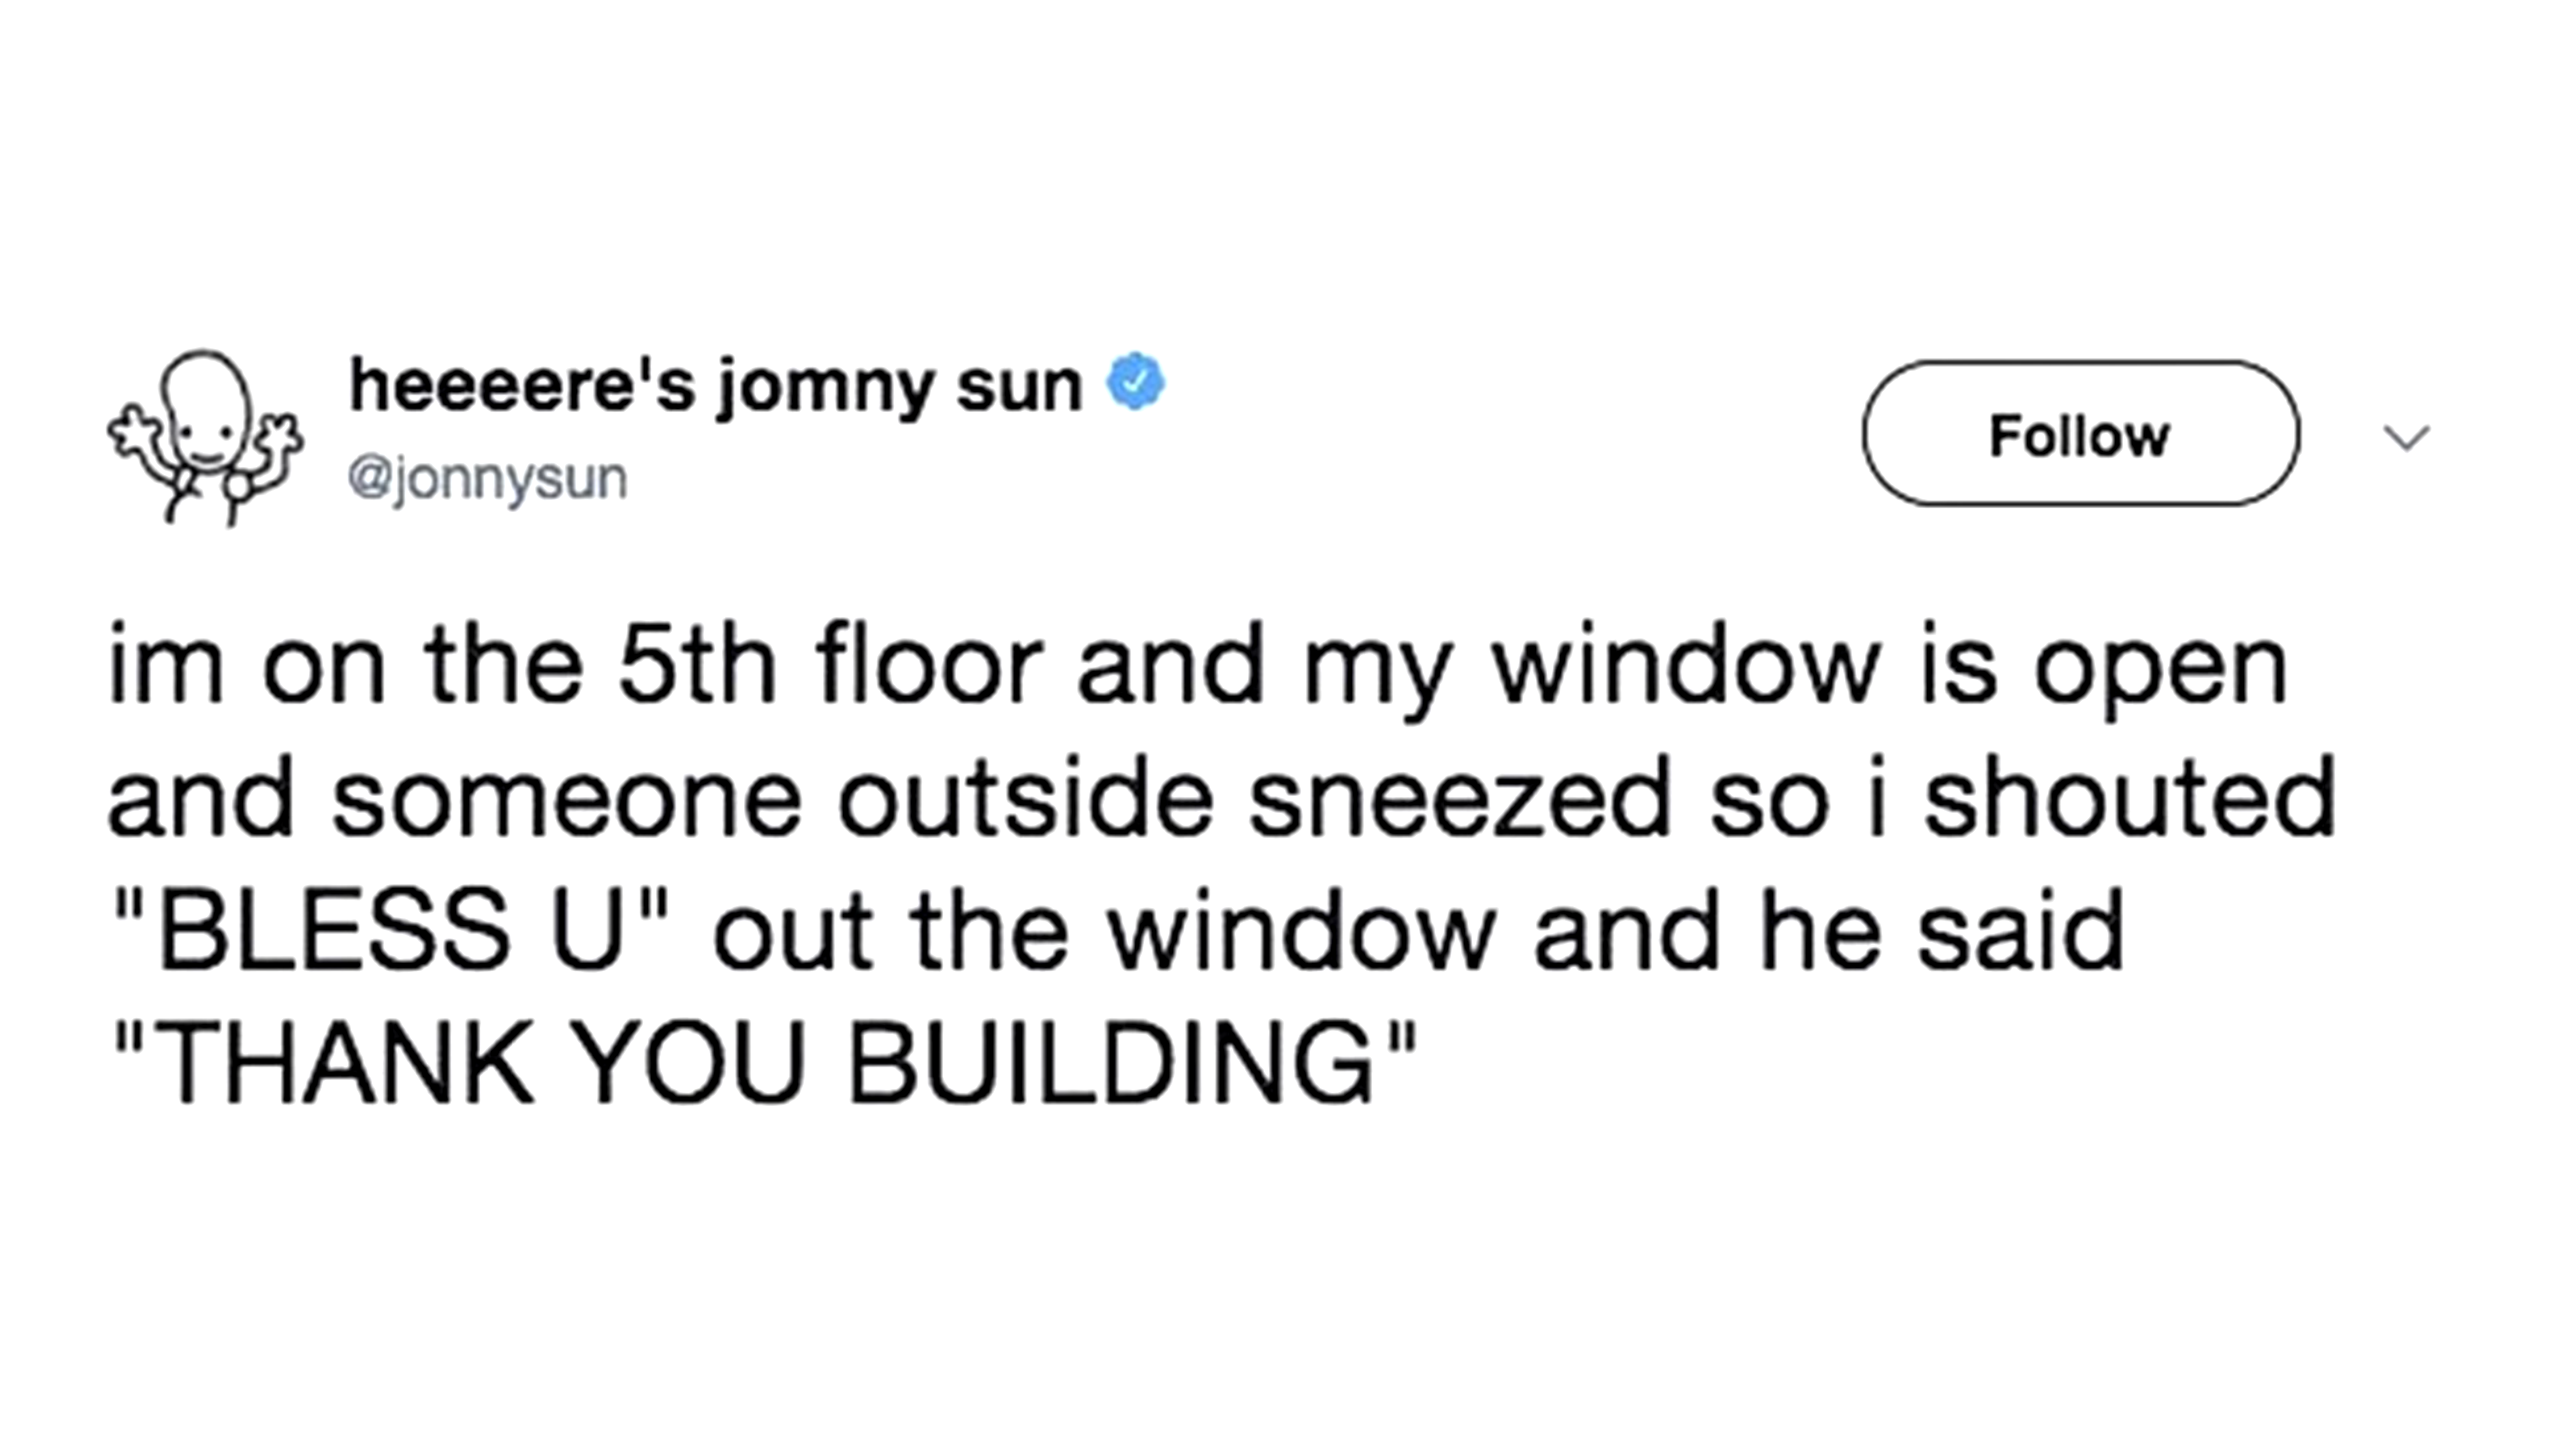 what a wholesome building